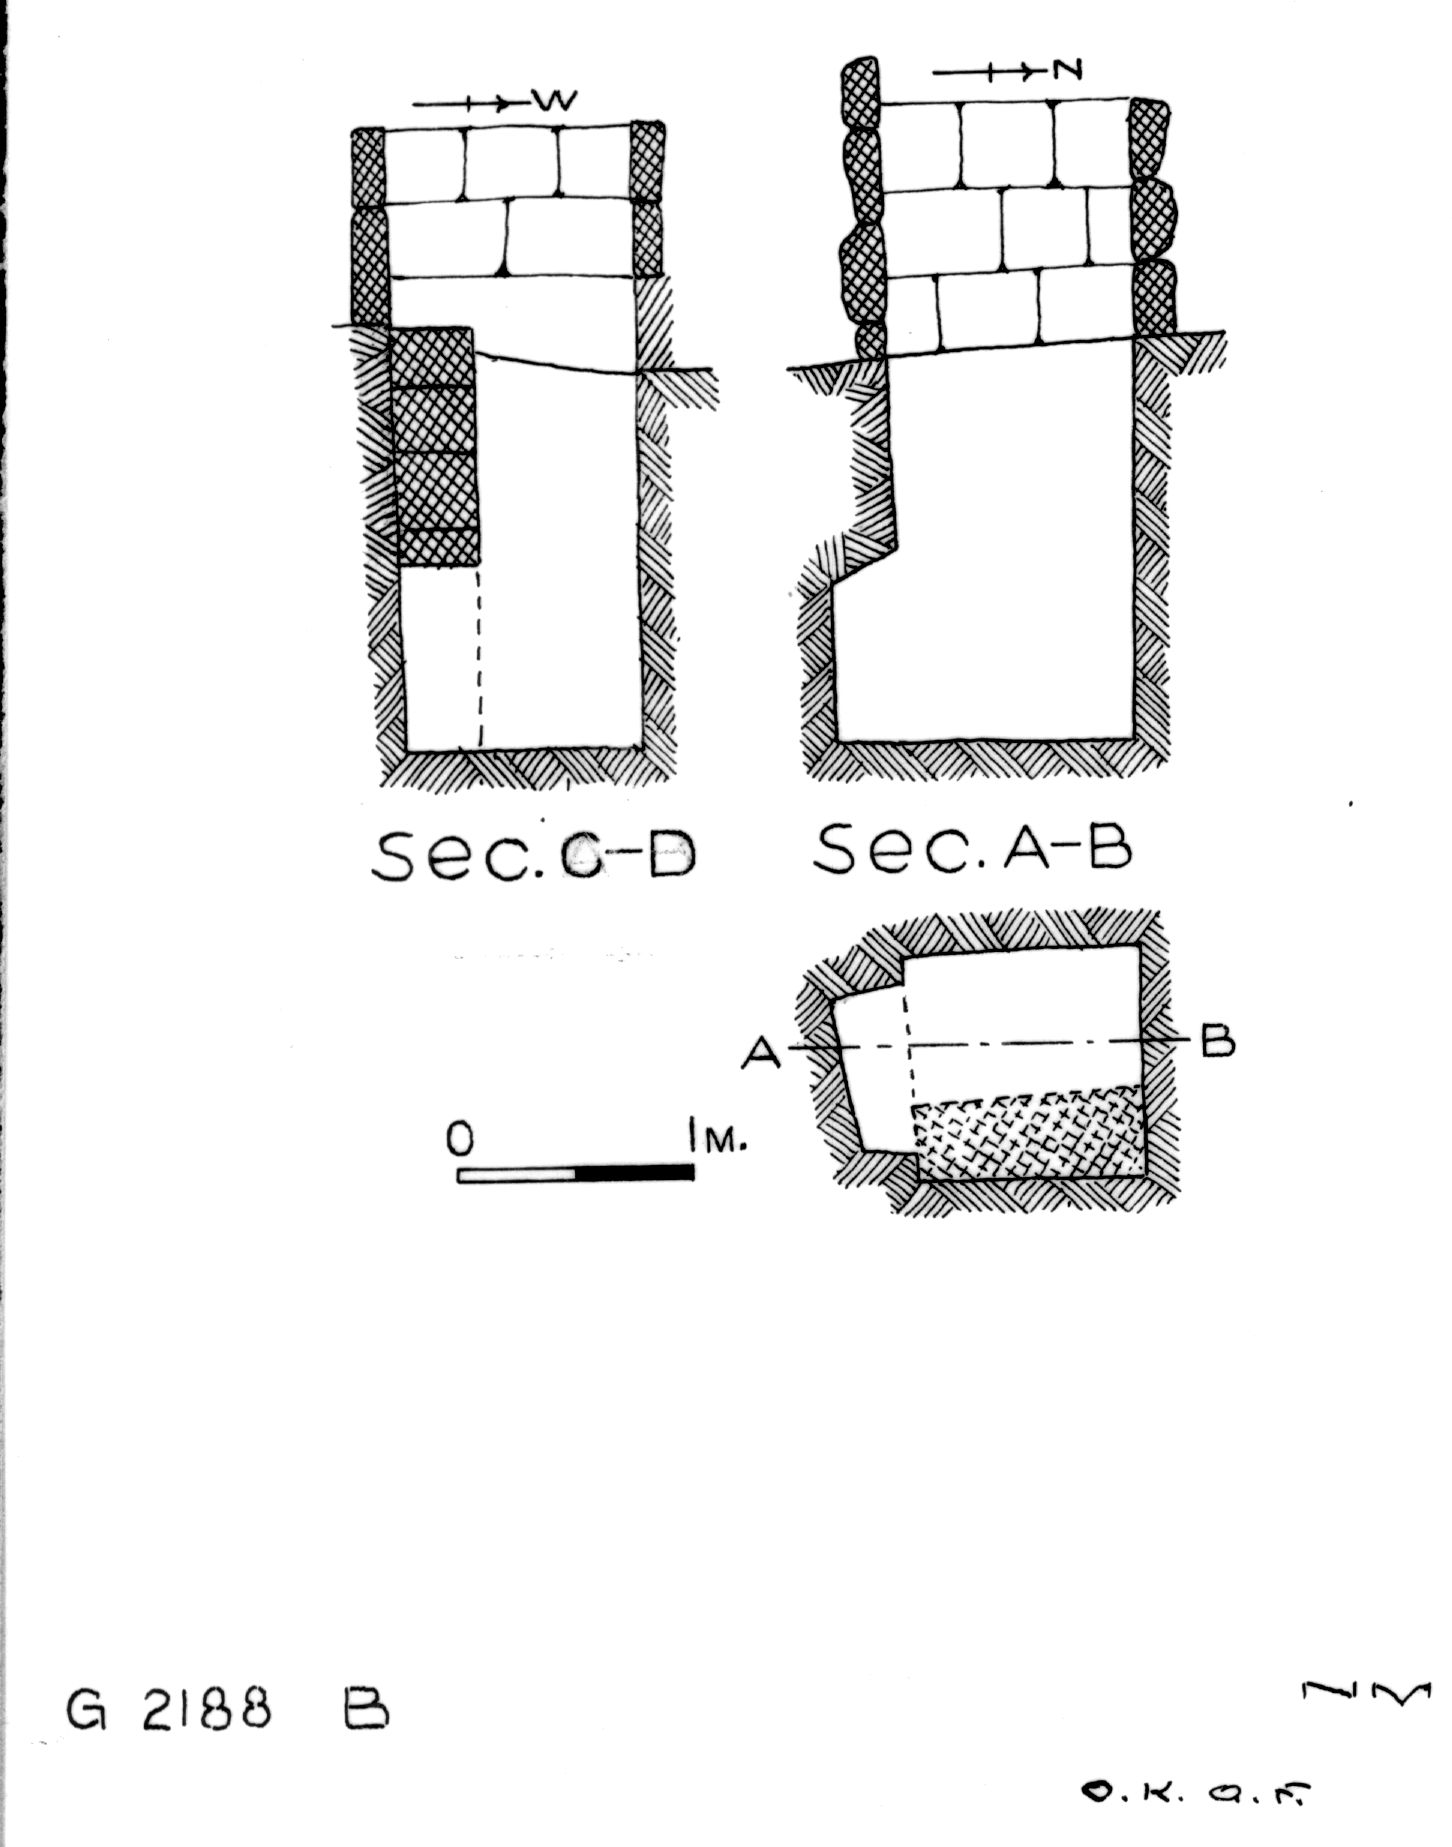 Maps and plans: G 2188, Shaft B